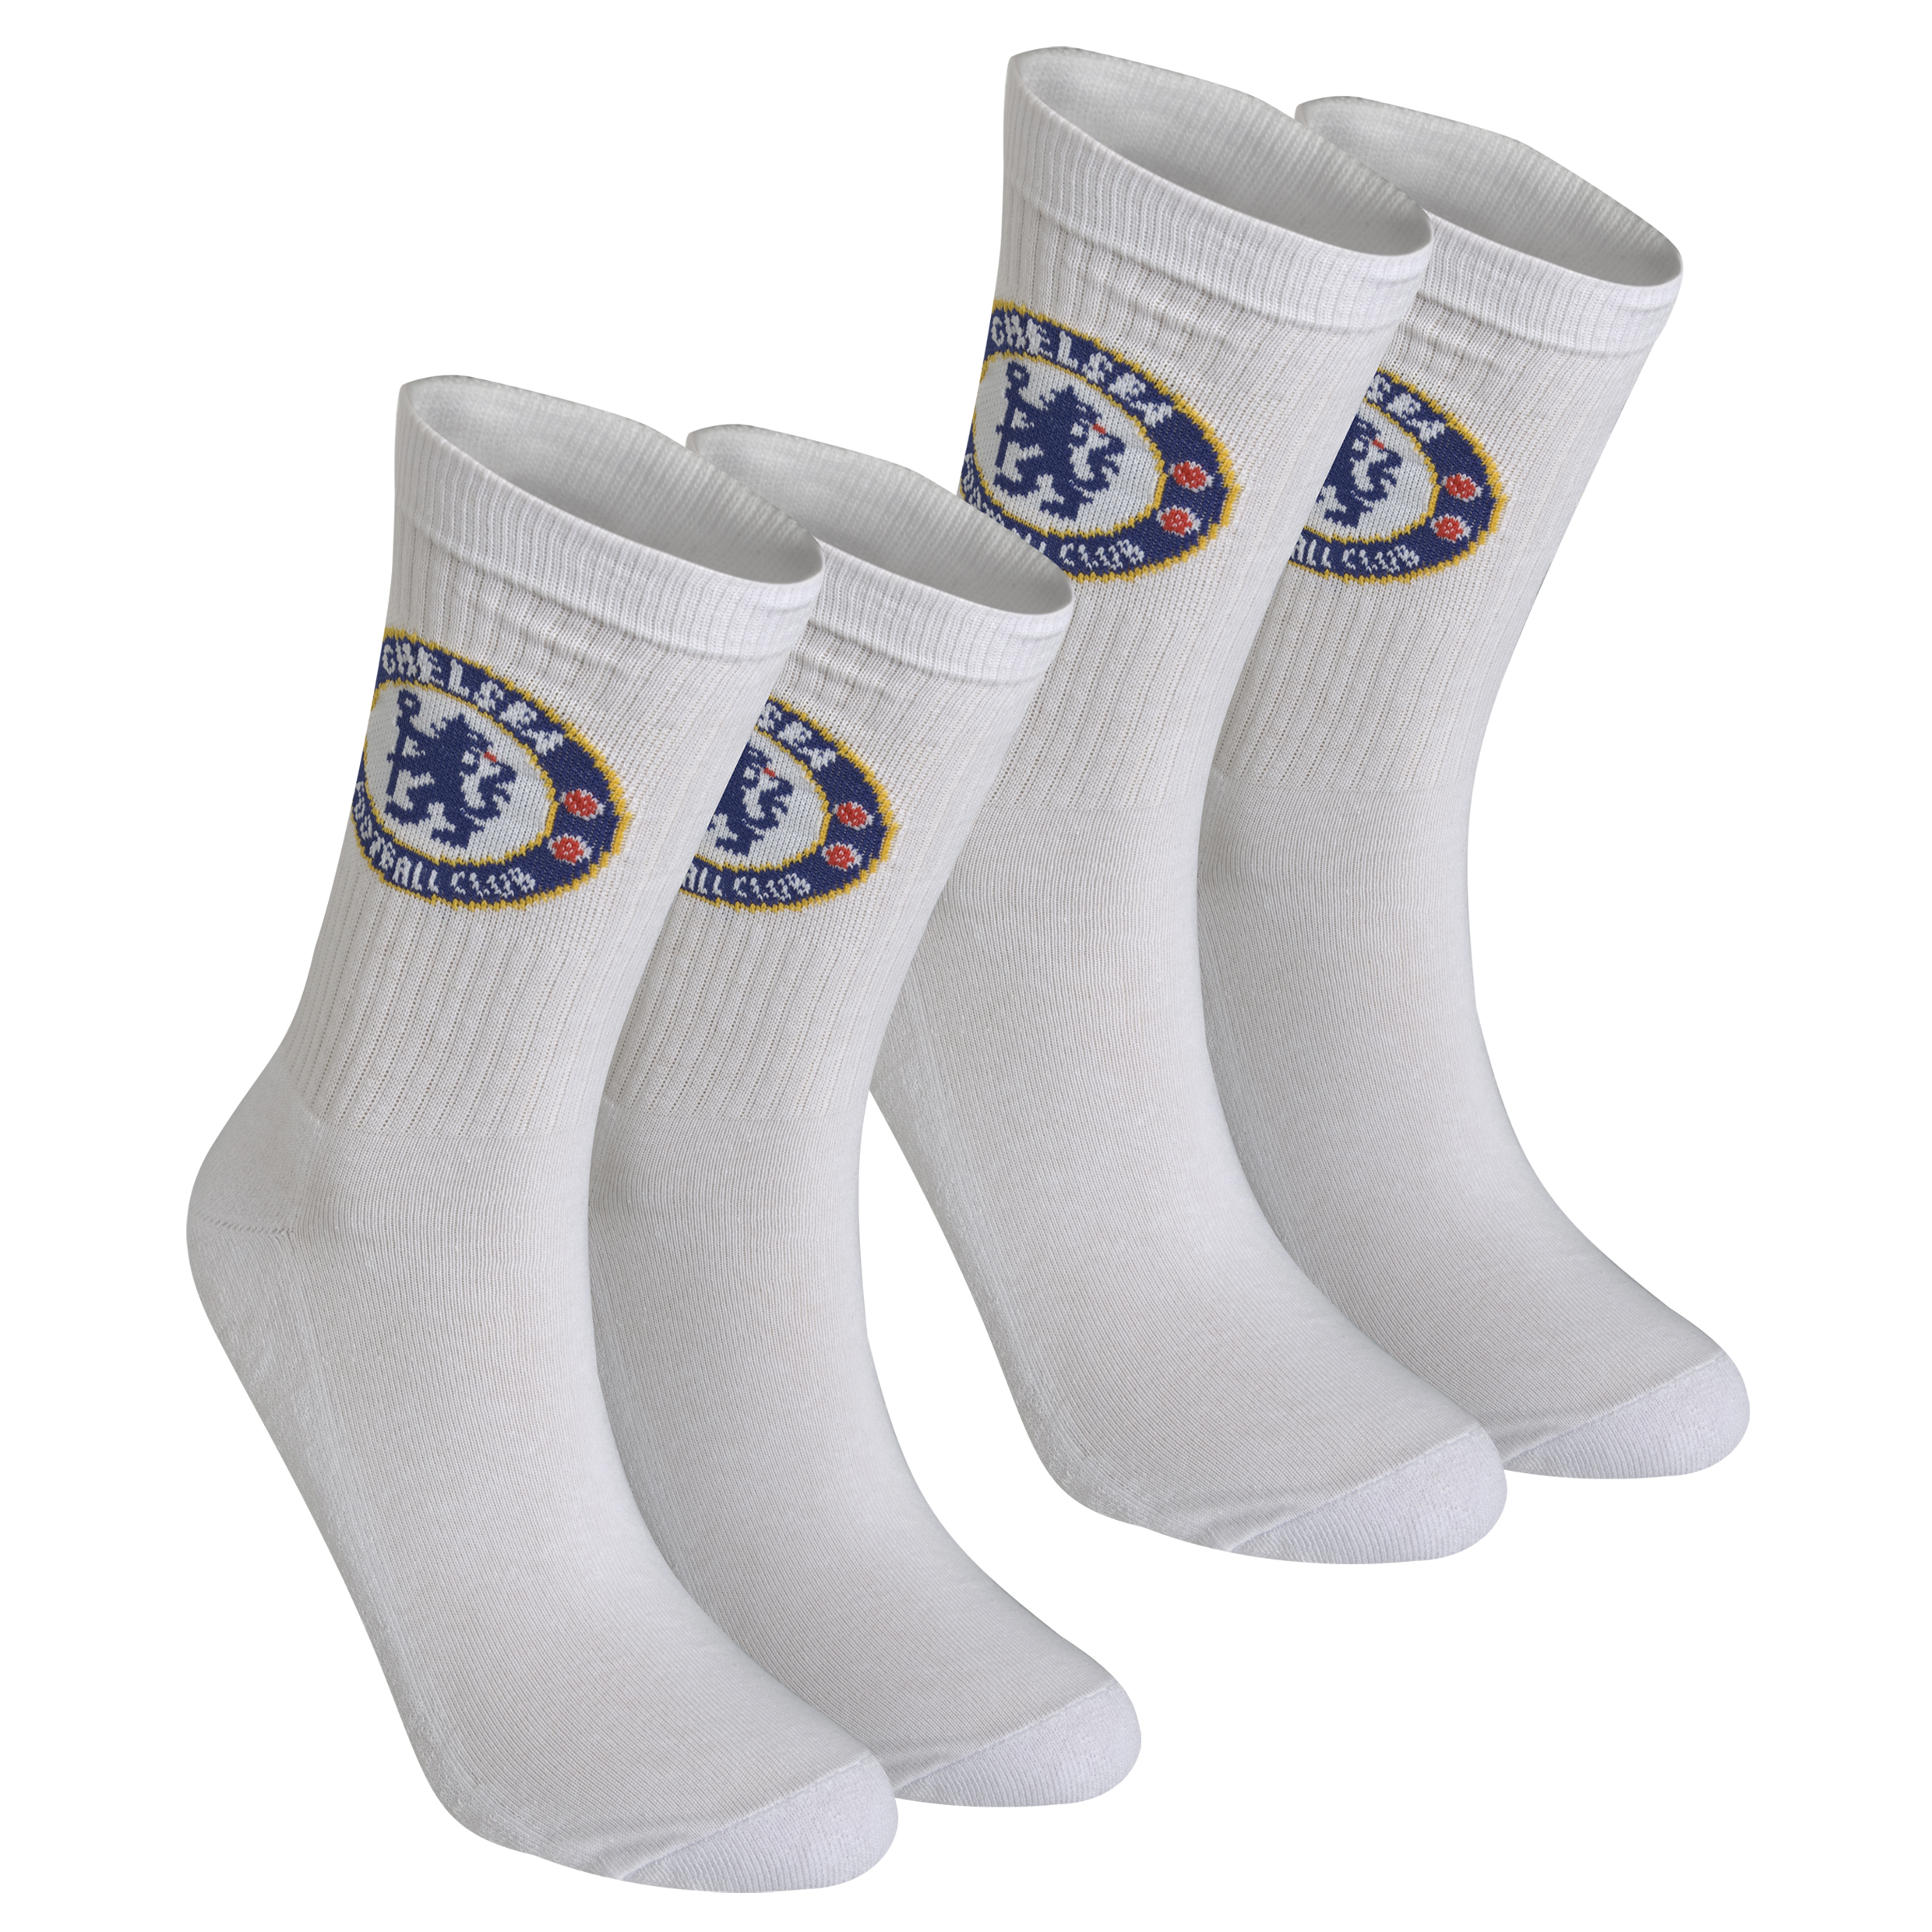 Chelsea 2 Pack Sports Socks - White - Boys